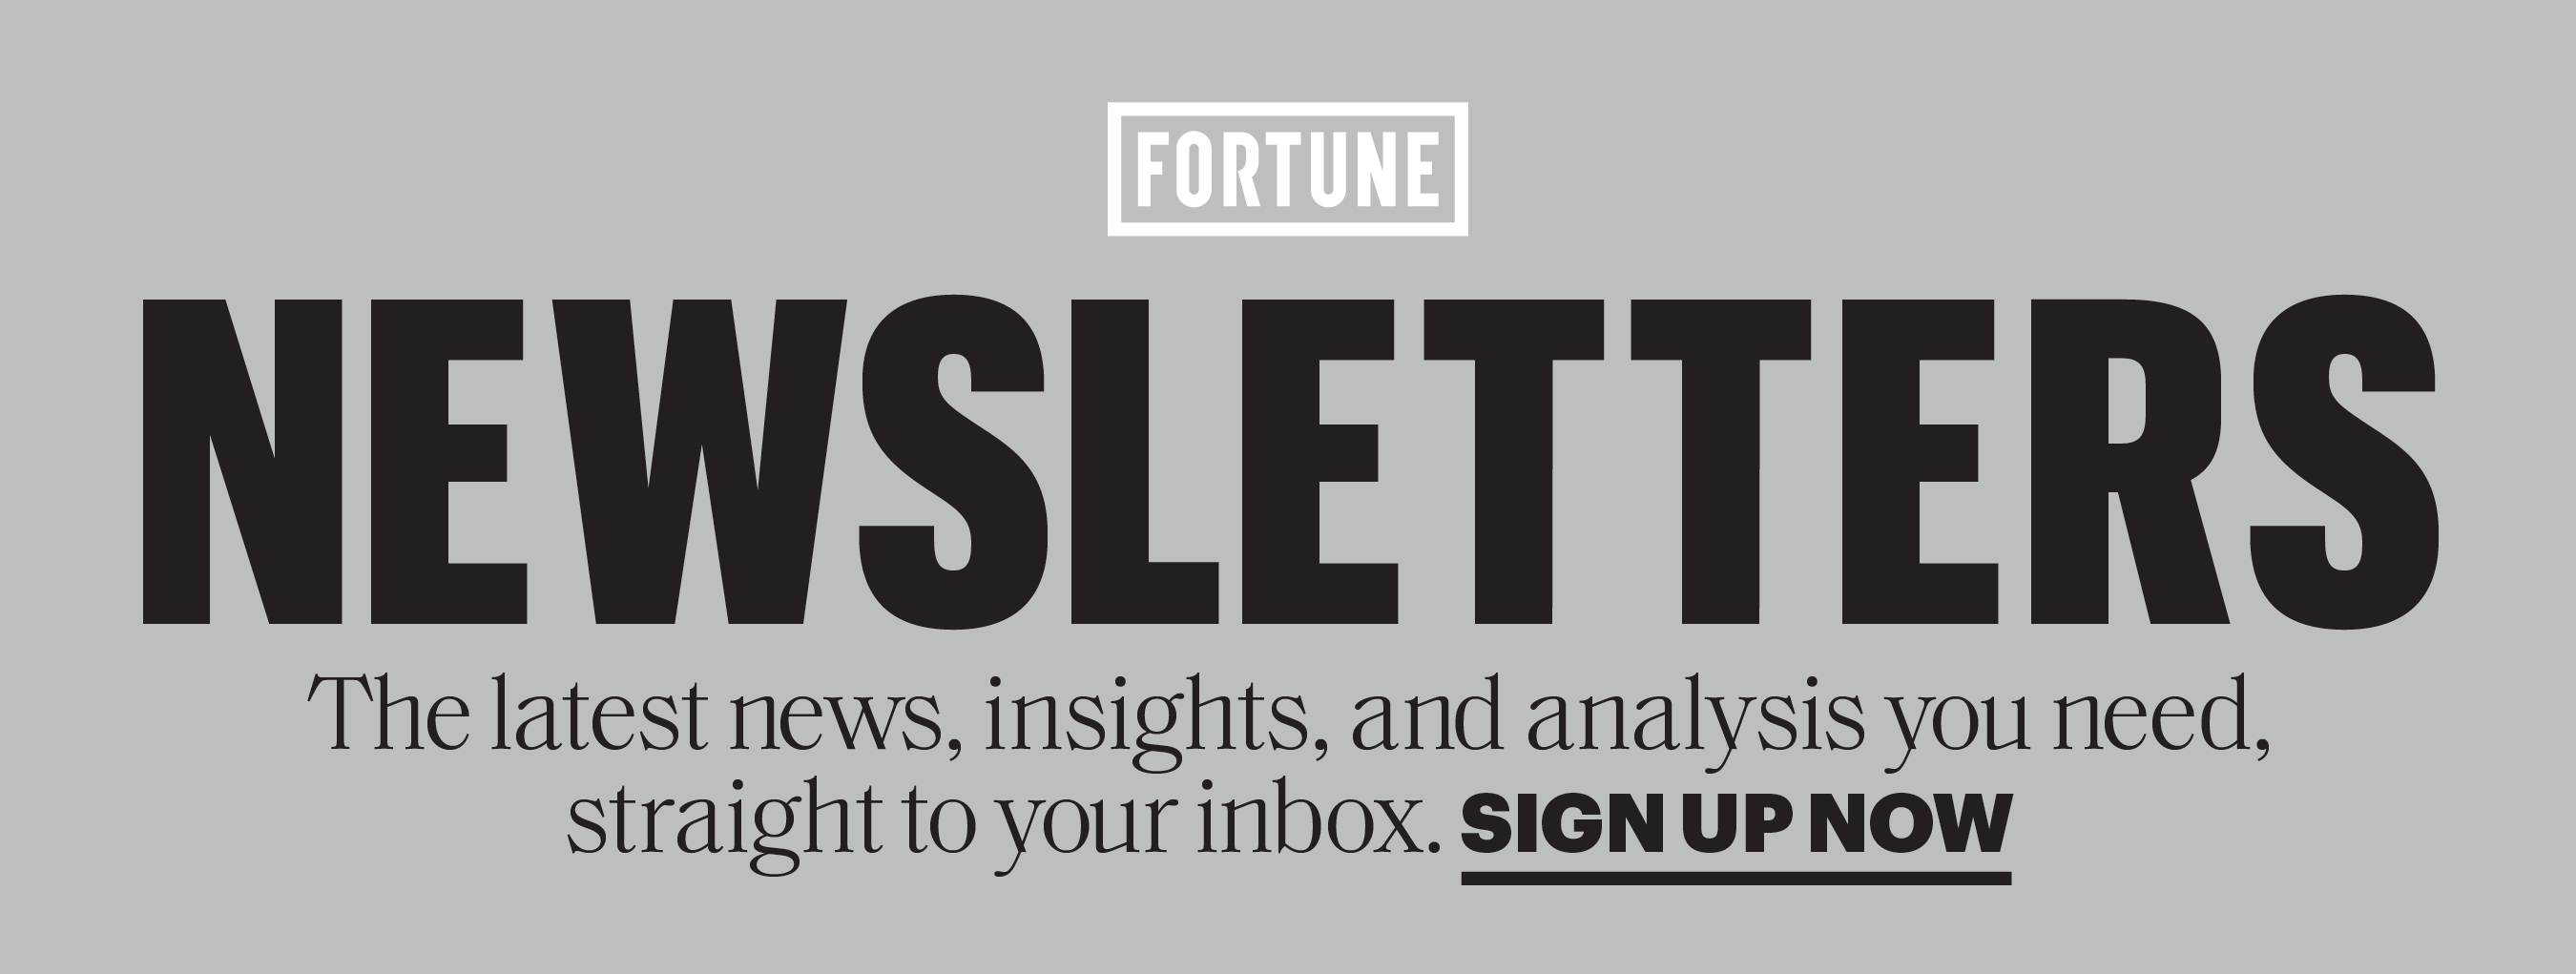 Join Fortune Newsletters Today